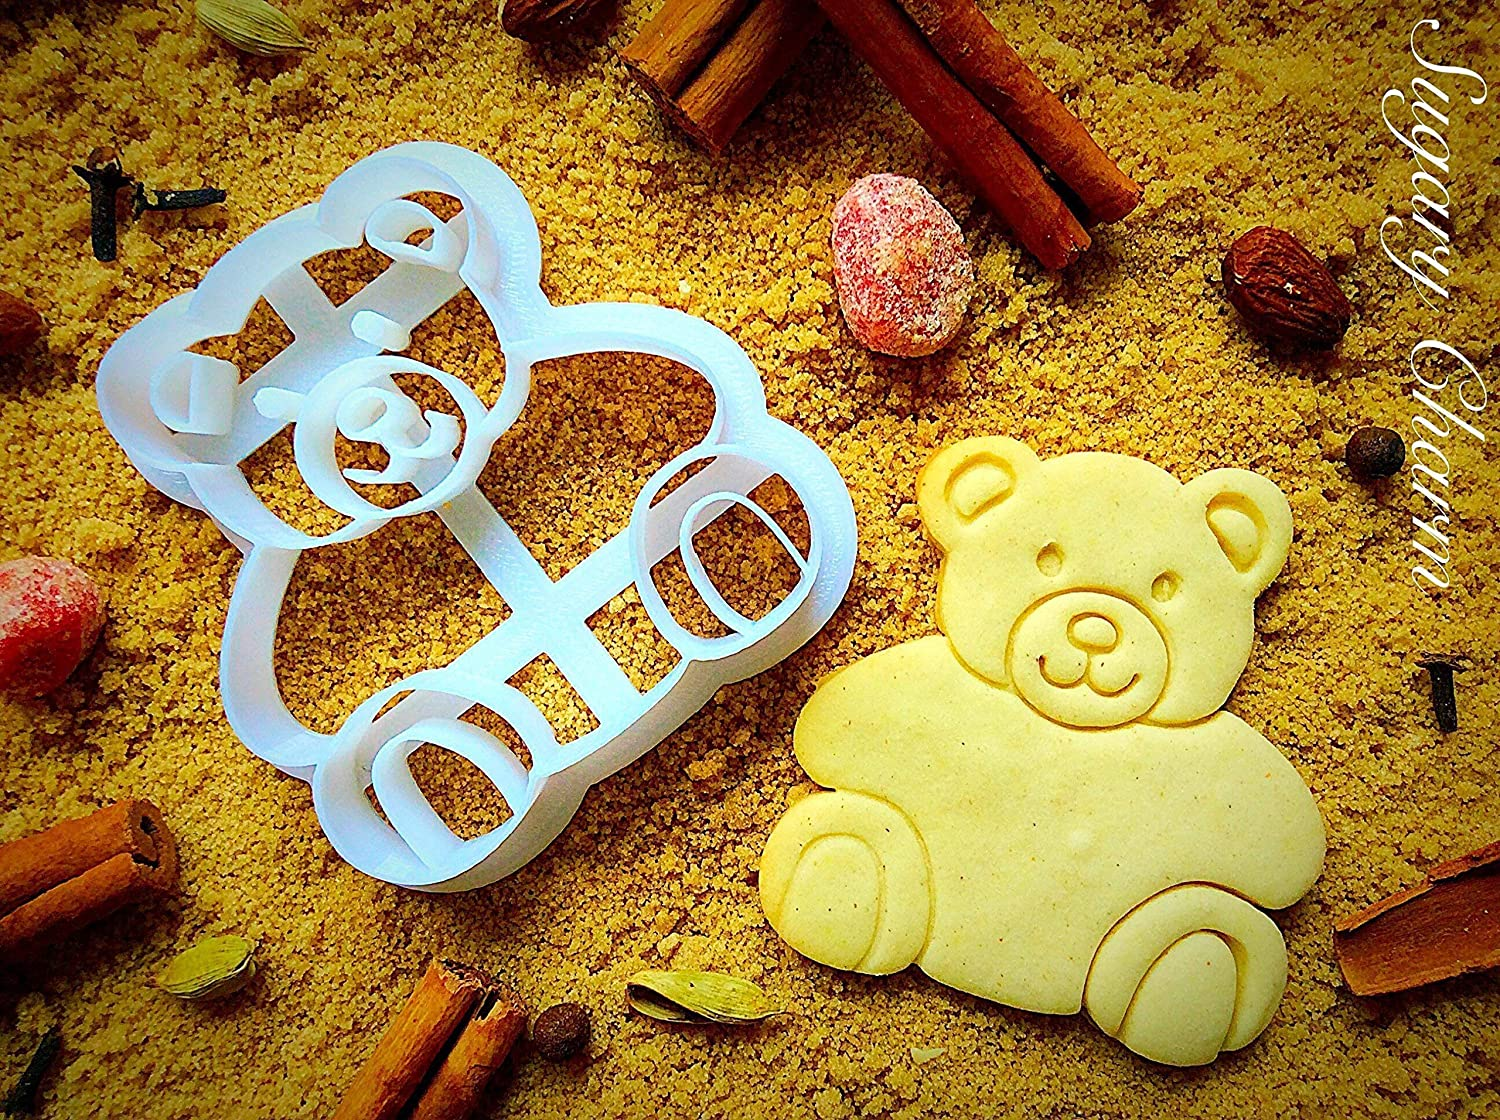 Teddy Bear Cookie Cutter - Small Present for Valentines Day, 1st Happy Birthday and Housewarming - Unique Shaped Cookie Cutters for Baby Shower - Handmade Cute Mini Kids Cutters by Sugary Charm